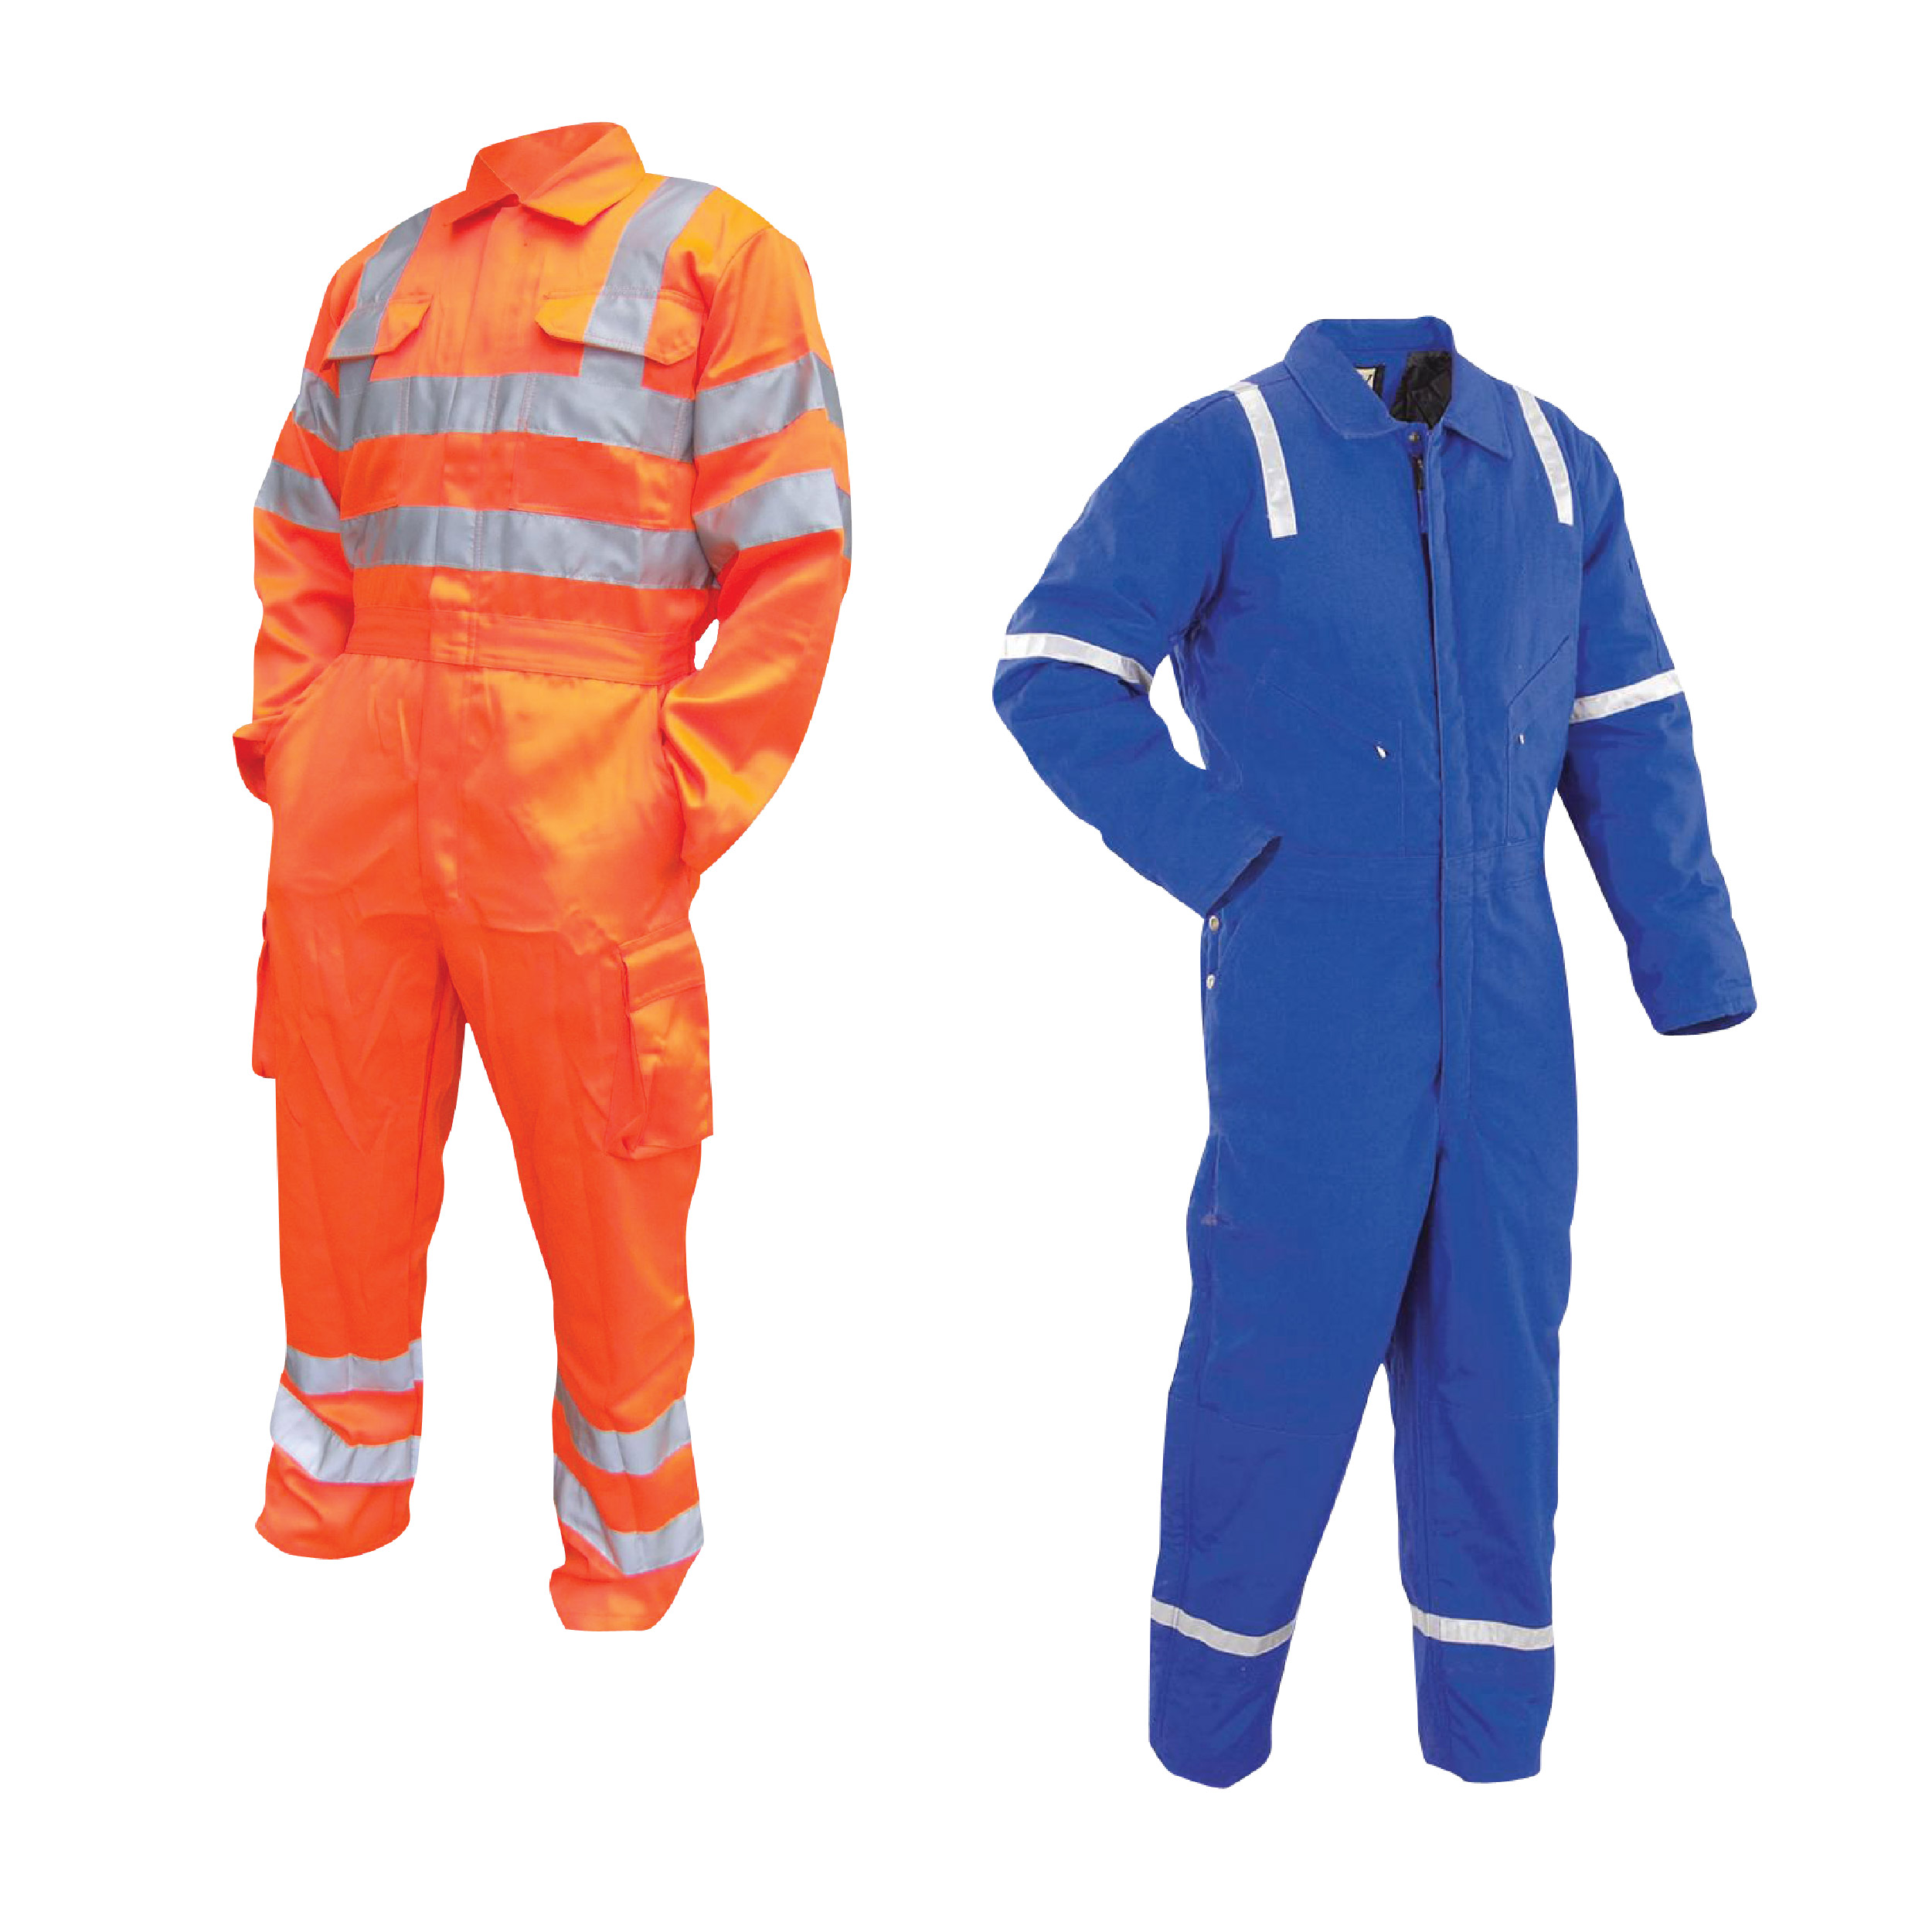 Customized Coveralls with reflectors taps